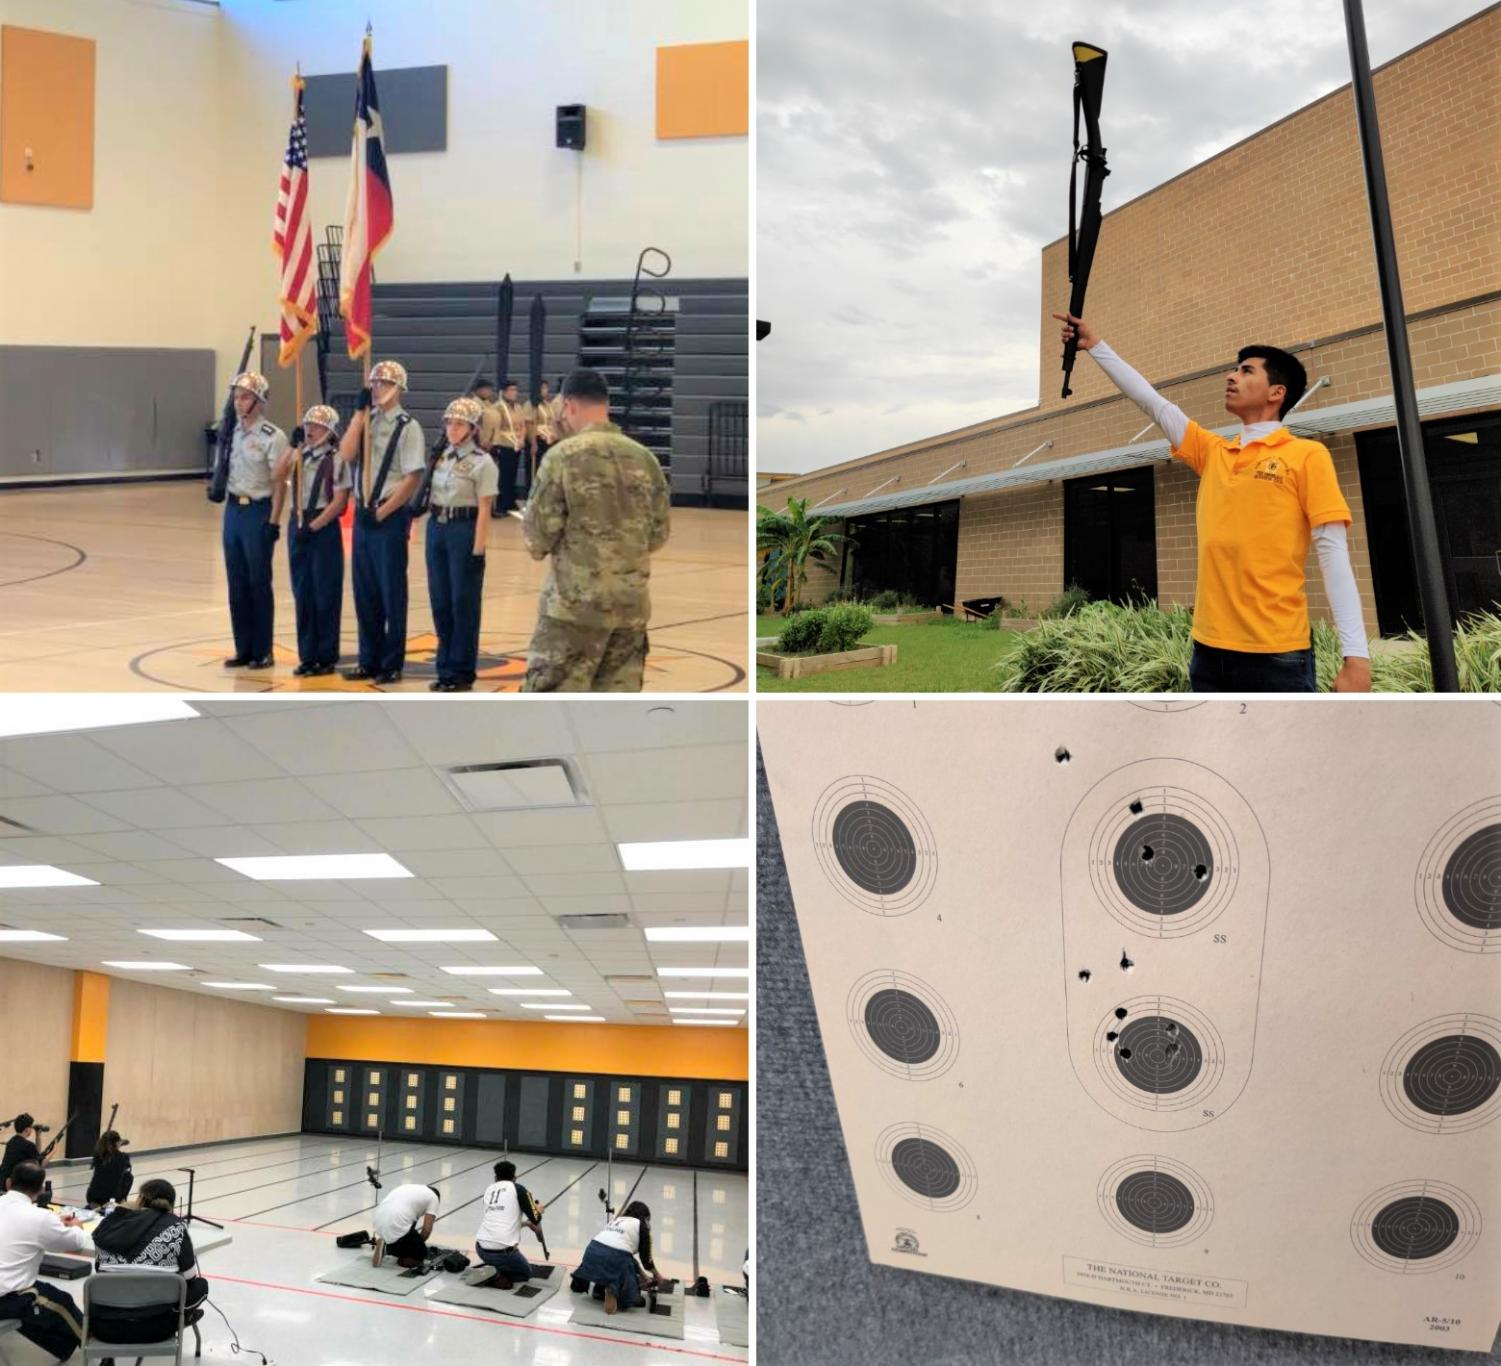 Wisdom JROTC students operate drills and practice marksmanship in the gun range